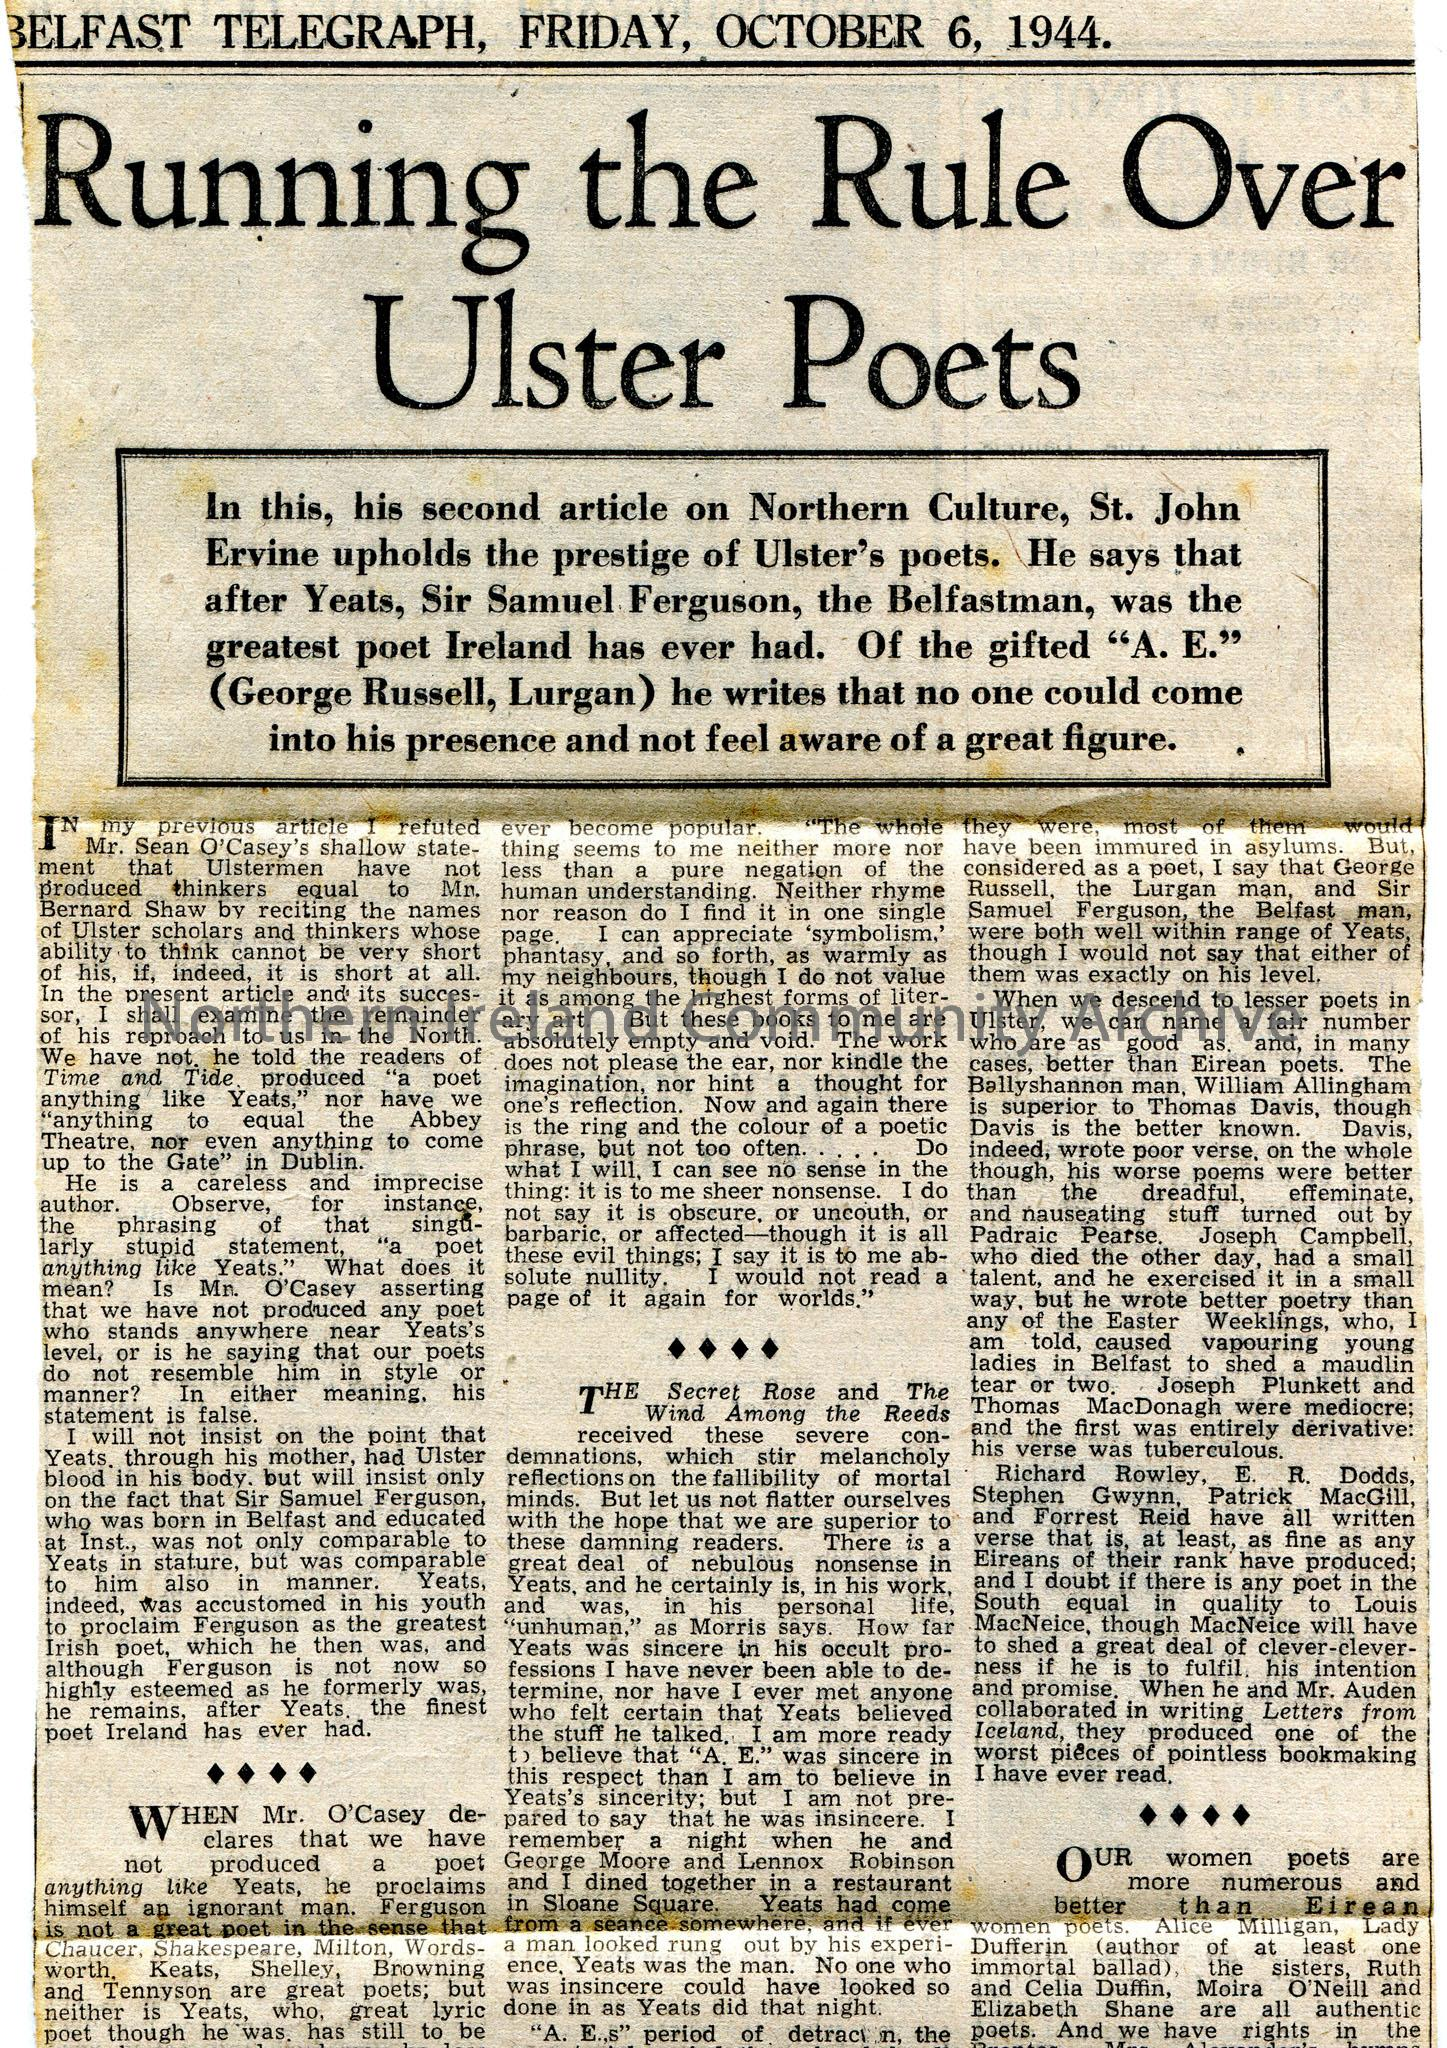 Article from the 'Belfast Telegraph' newspaper. Dated Friday, 6th October, 1944. Titled, 'Running the Rule Over Ulster Poets'. The second article by S…